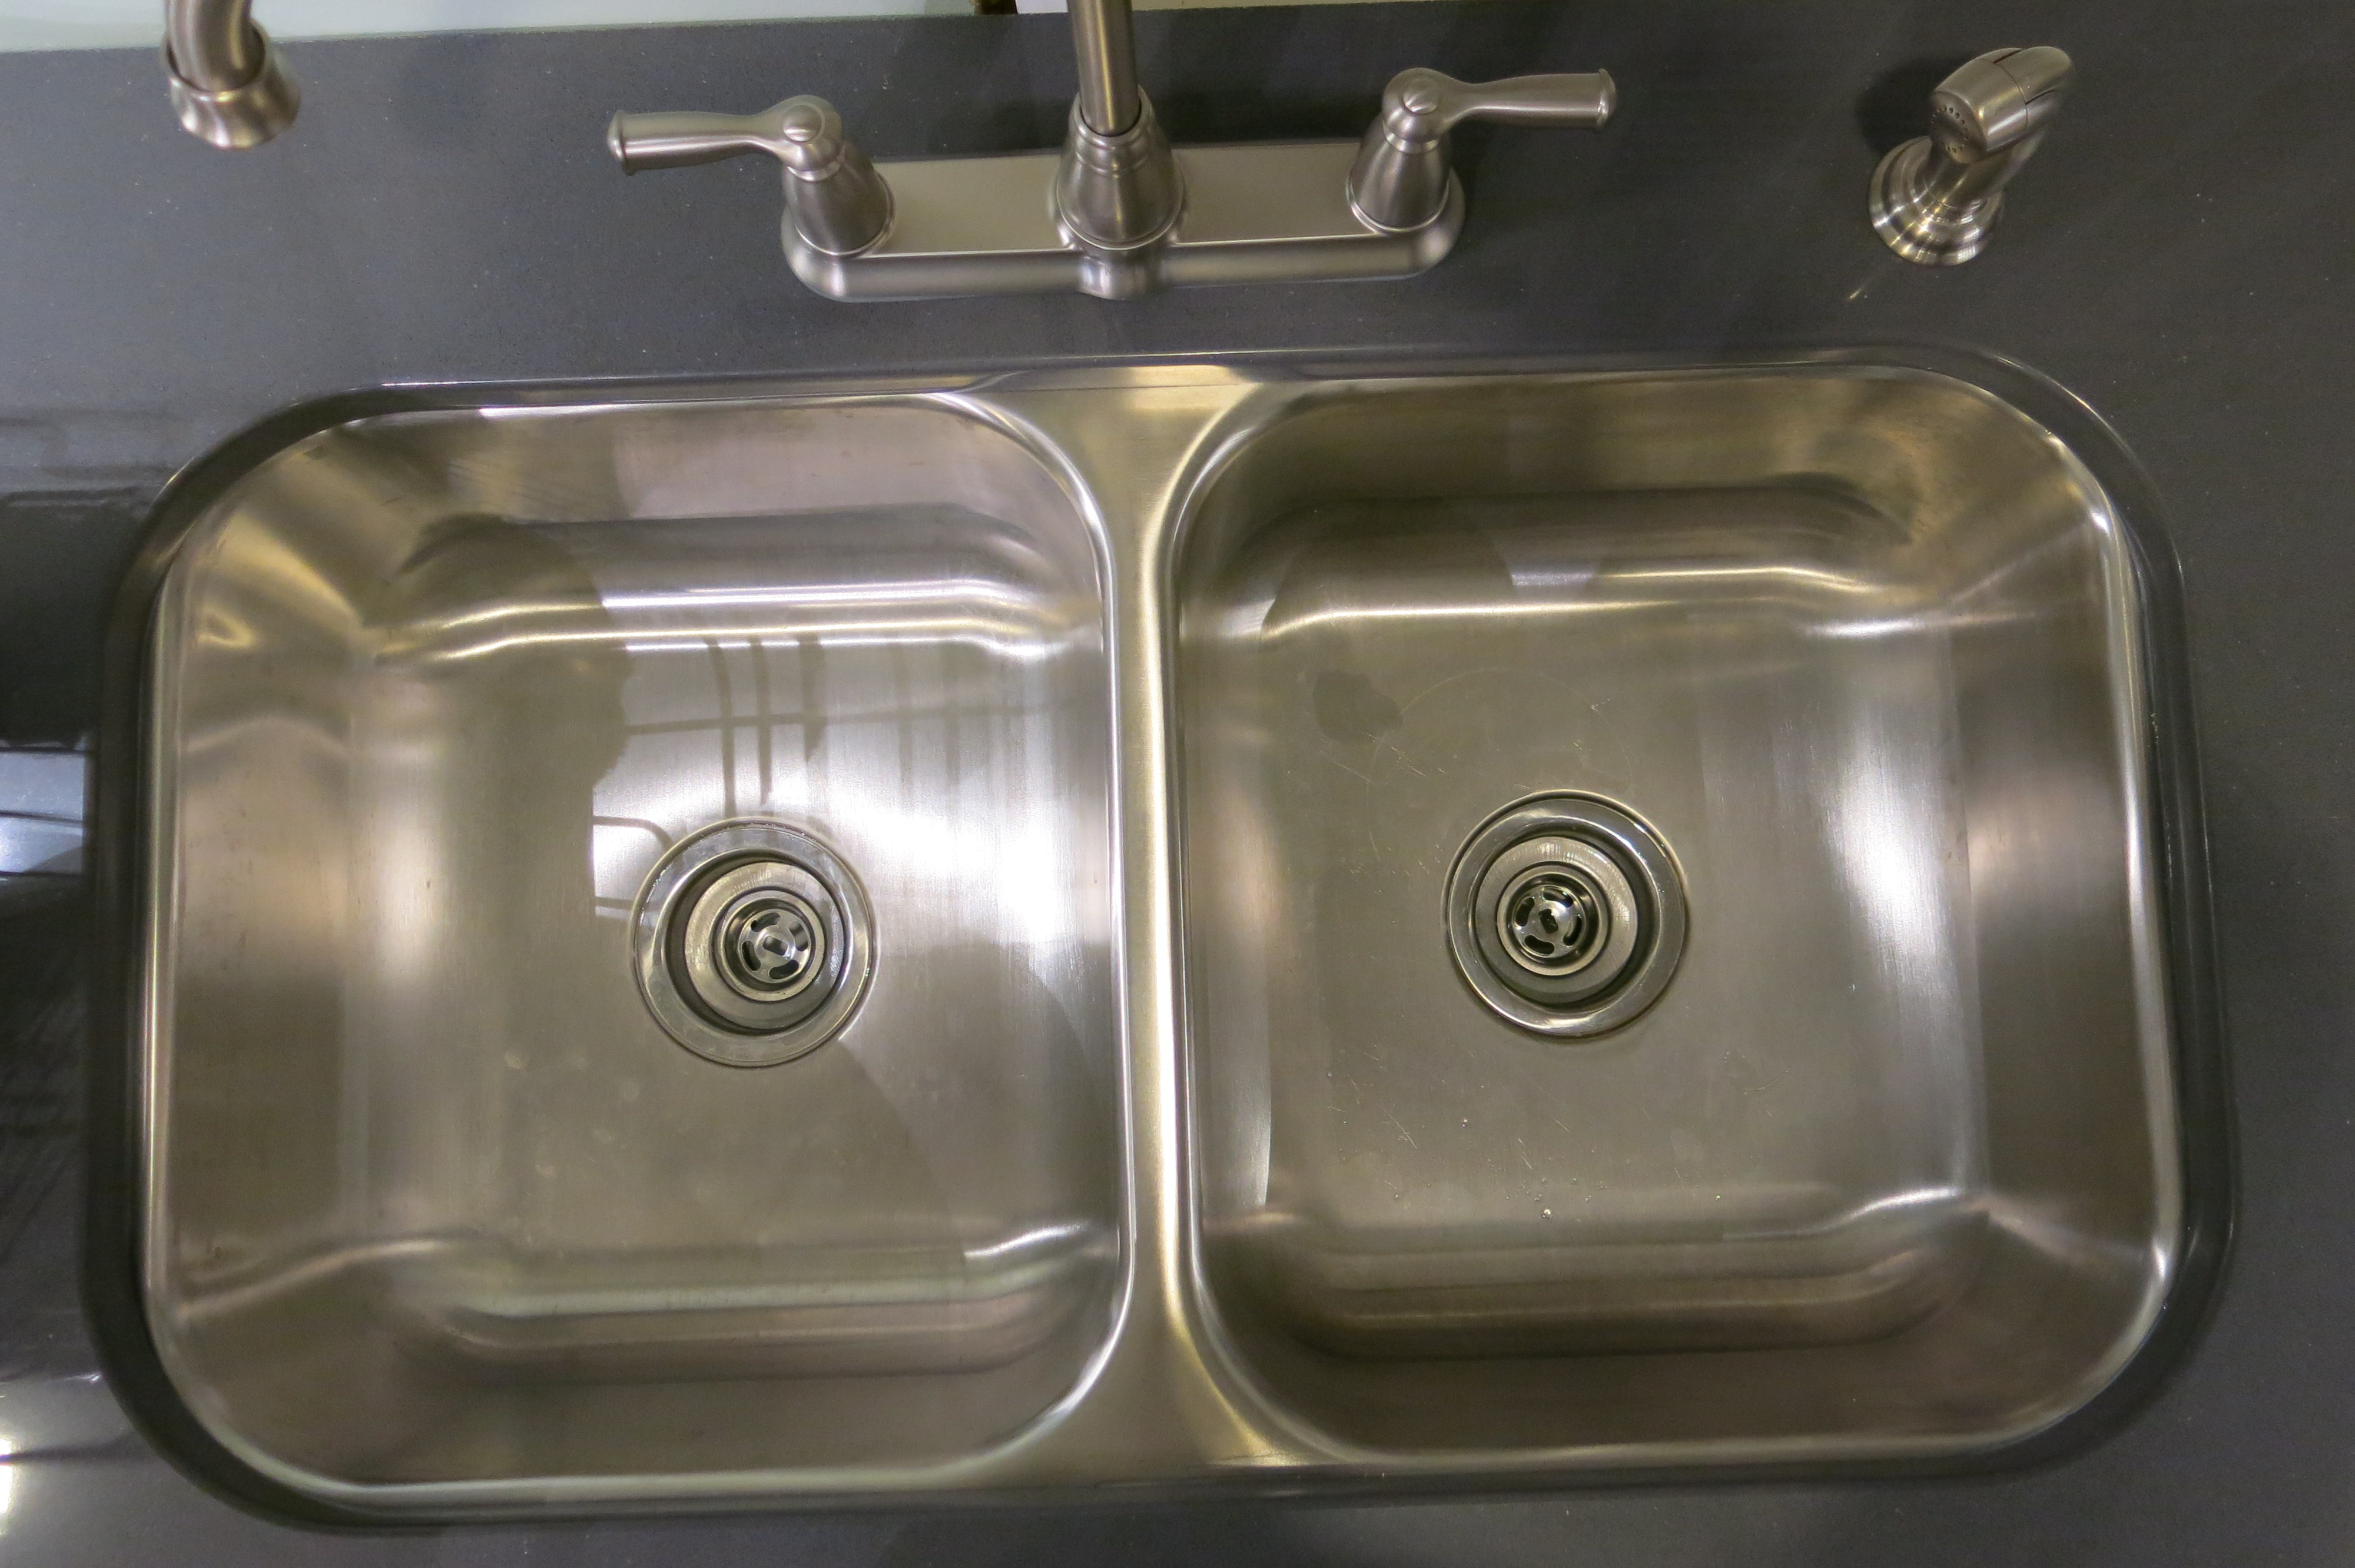 Dishwasher Countertop Gap : look at the plumbing. PA building code requires the use of an air-gap ...